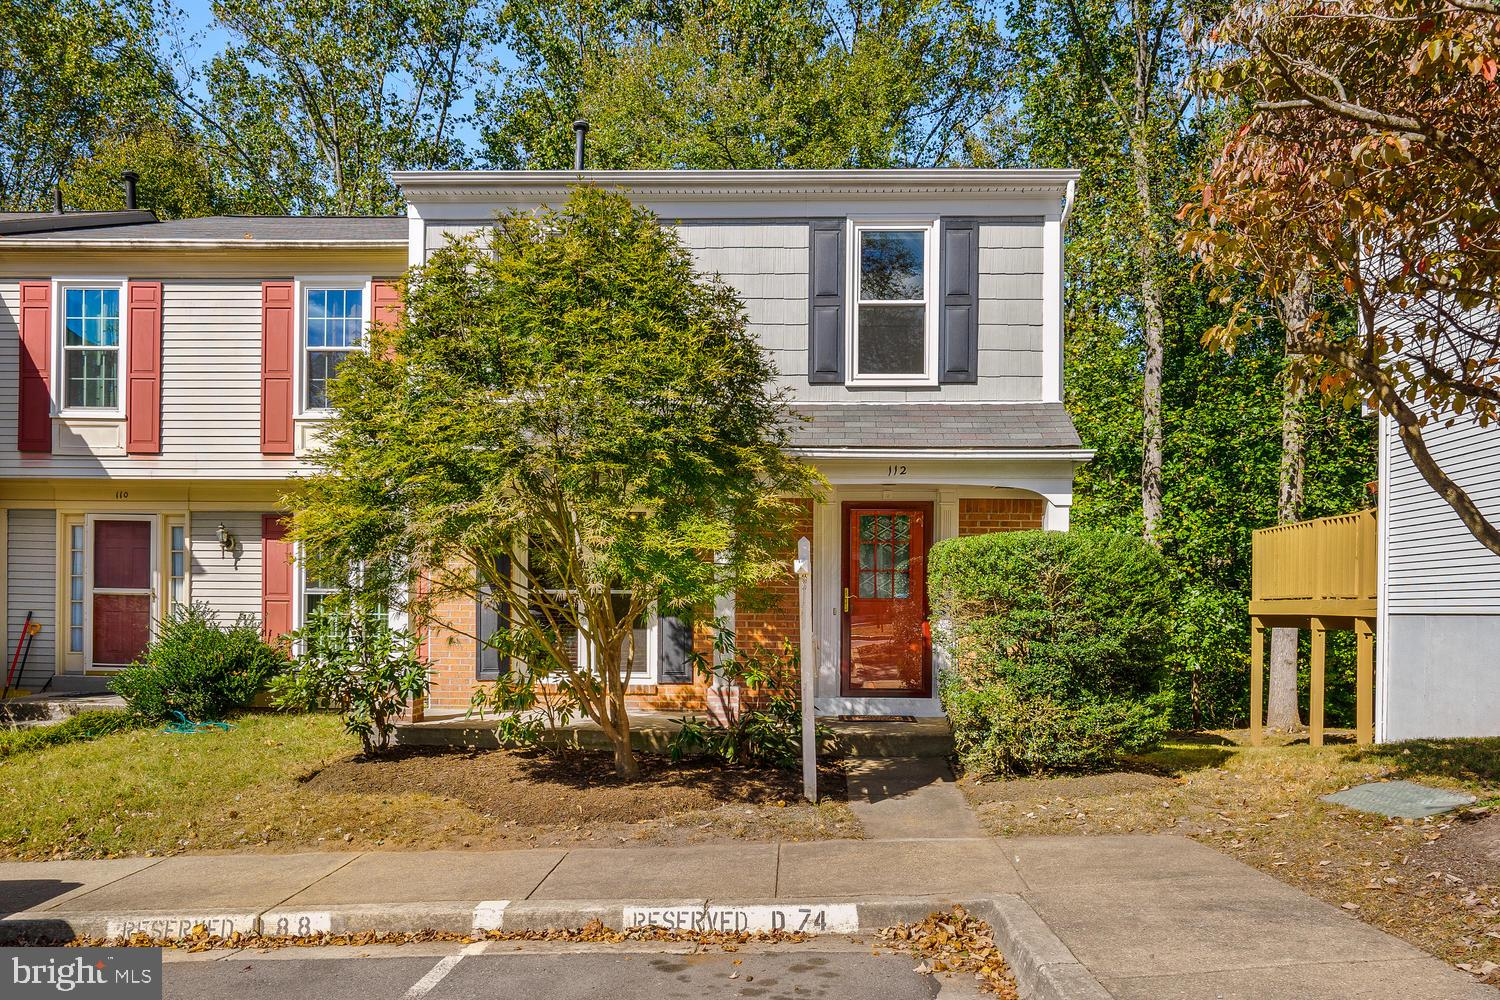 """Open Sun 10/13, 2-4. Park in space D74. UPDATED End-Unit nestled in trees of MC Parkland. Views from KT and Owner's Suite are spectacular & private! Must-see RENOVATED Kitchen w/Island. Soft-close, dowel joint, solid wood cabinets w/under cabinet lighting. 3/4"""" American Red Oak floors on entire main level. Both full BA's improved. Fun rec-room w/wood burning fireplace & sliders to paver patio. Carpet just installed on BR level. Fresh paint. Check Disclosures for details on upgrades & amenities."""